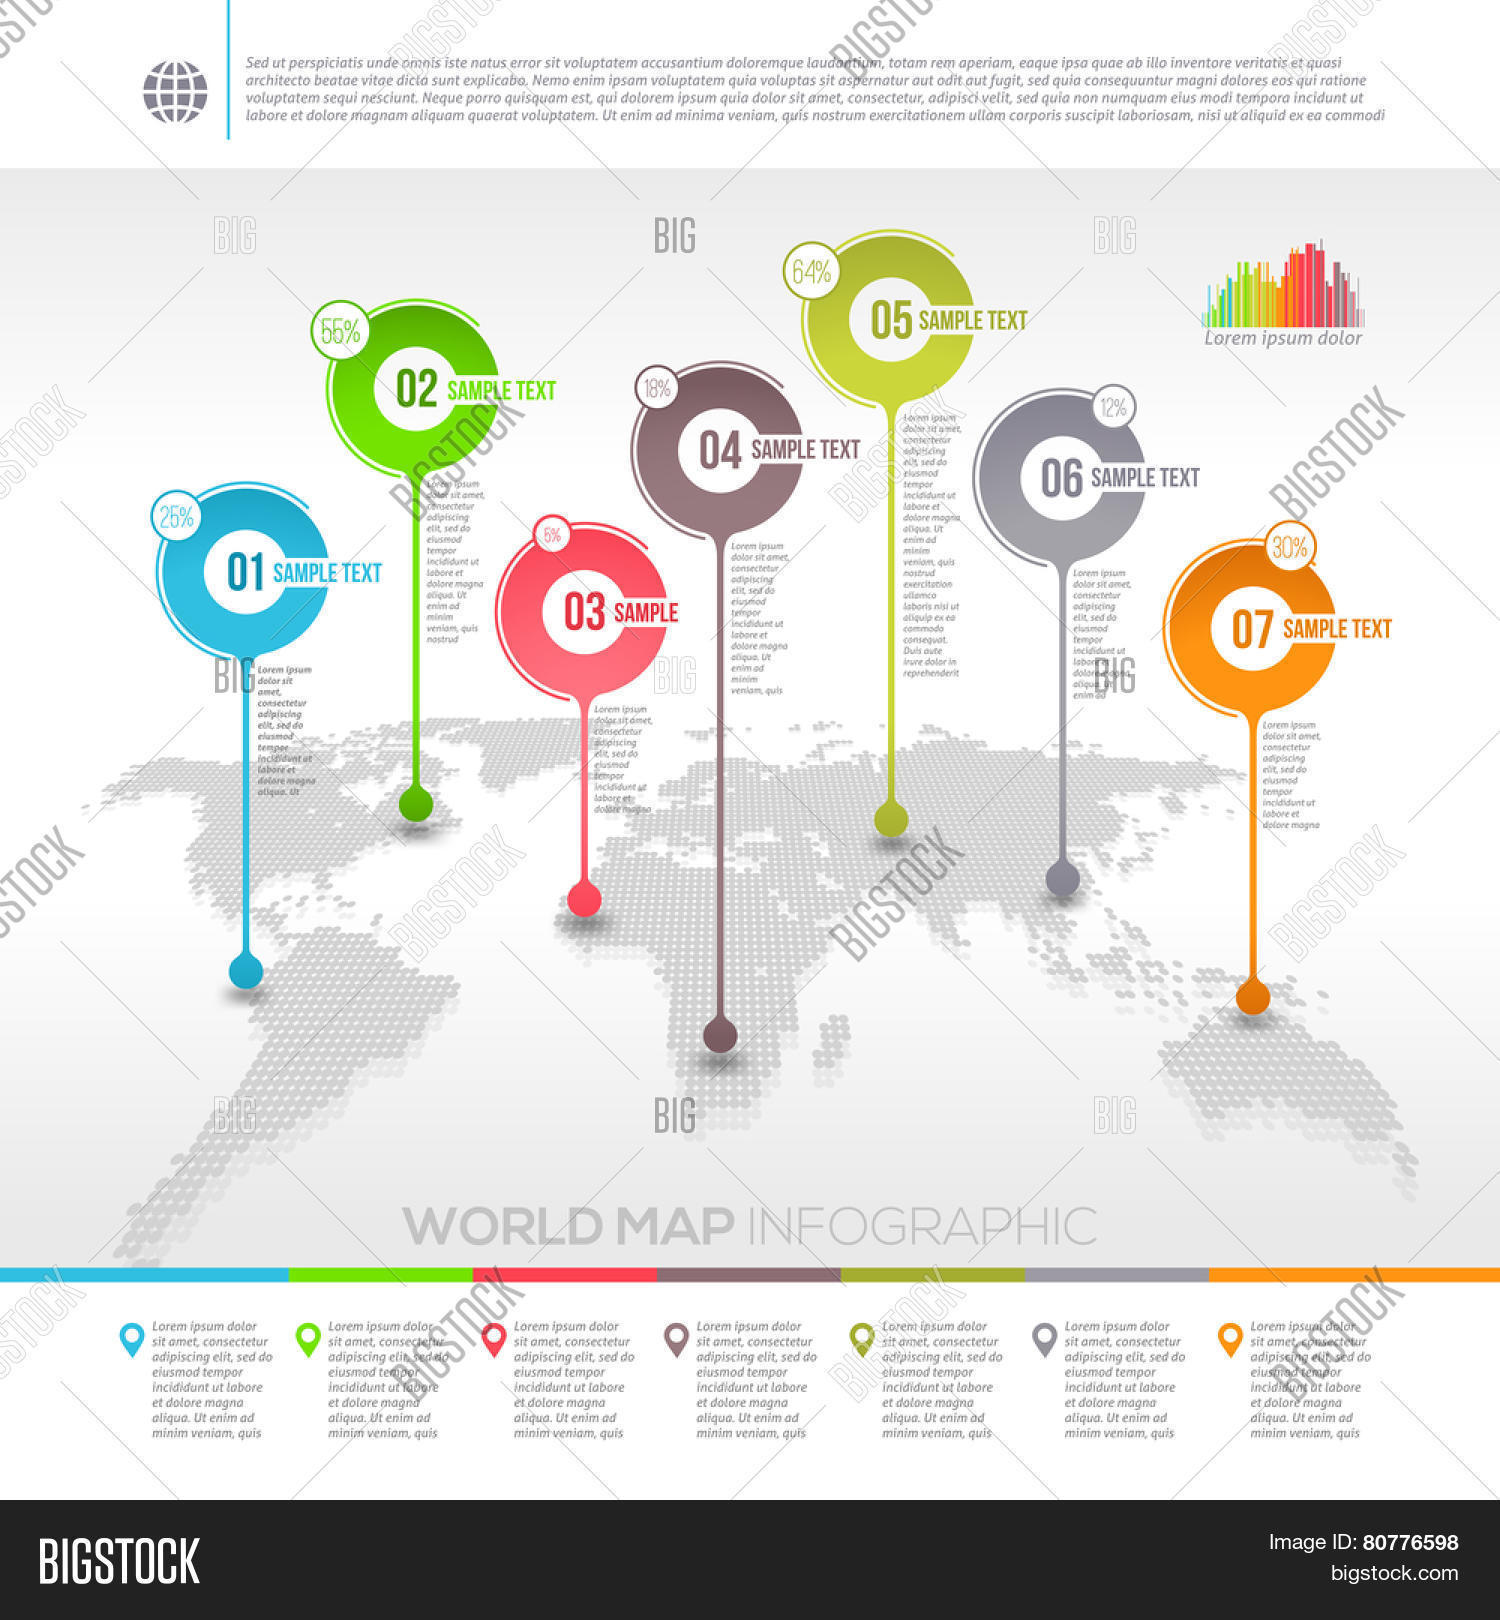 Vector y foto template vector design world map bigstock template vector design world map infographic with map pointers gumiabroncs Choice Image